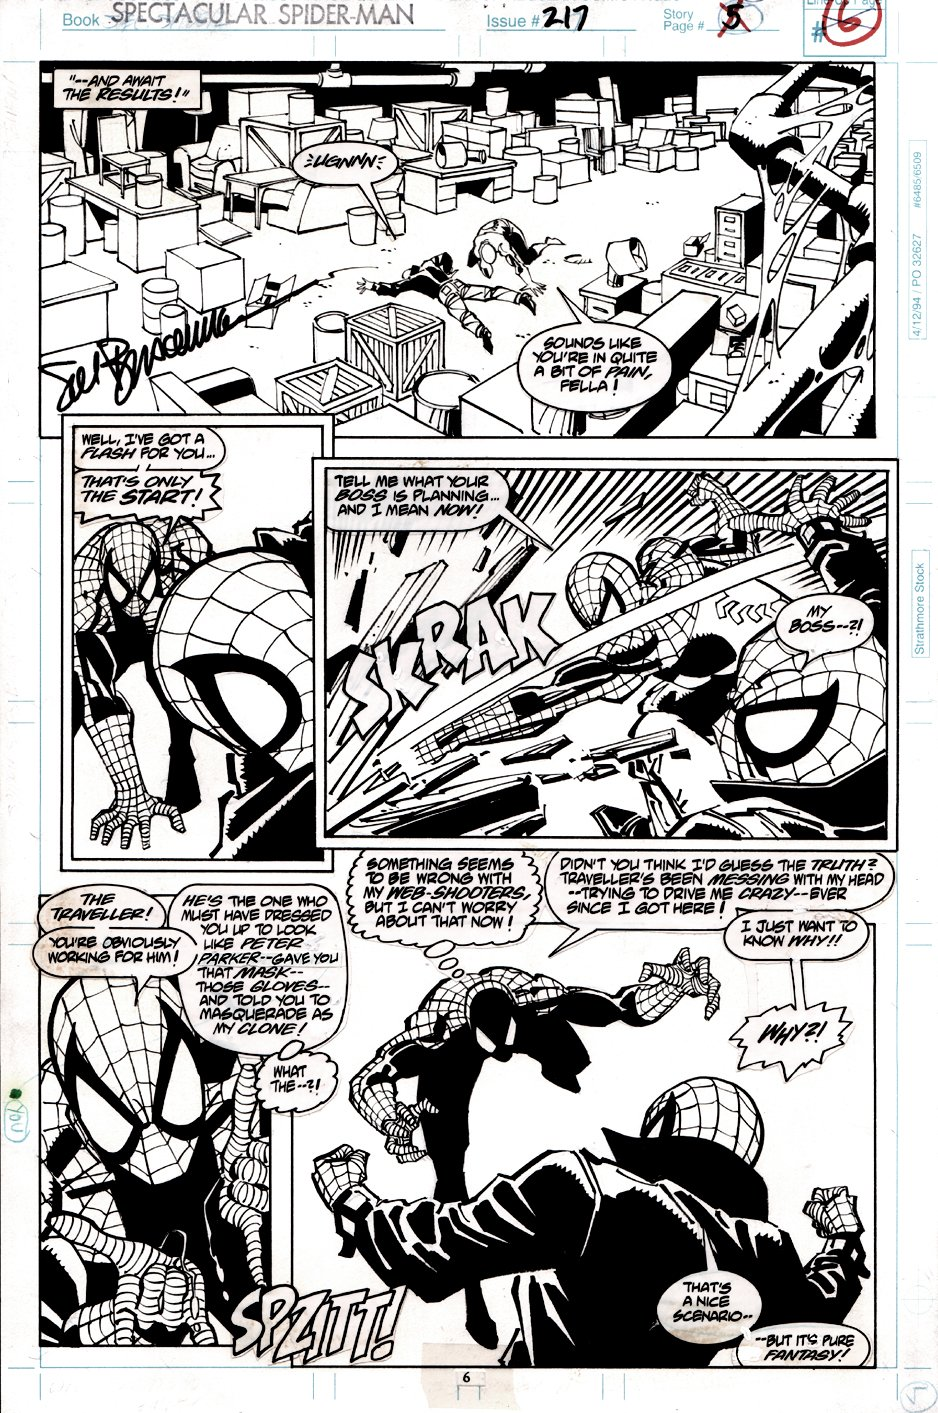 Spectacular Spider-Man #217 p 6 (VERY EARLY SPIDER-MAN / BEN REILLY BATTLE!) 1994